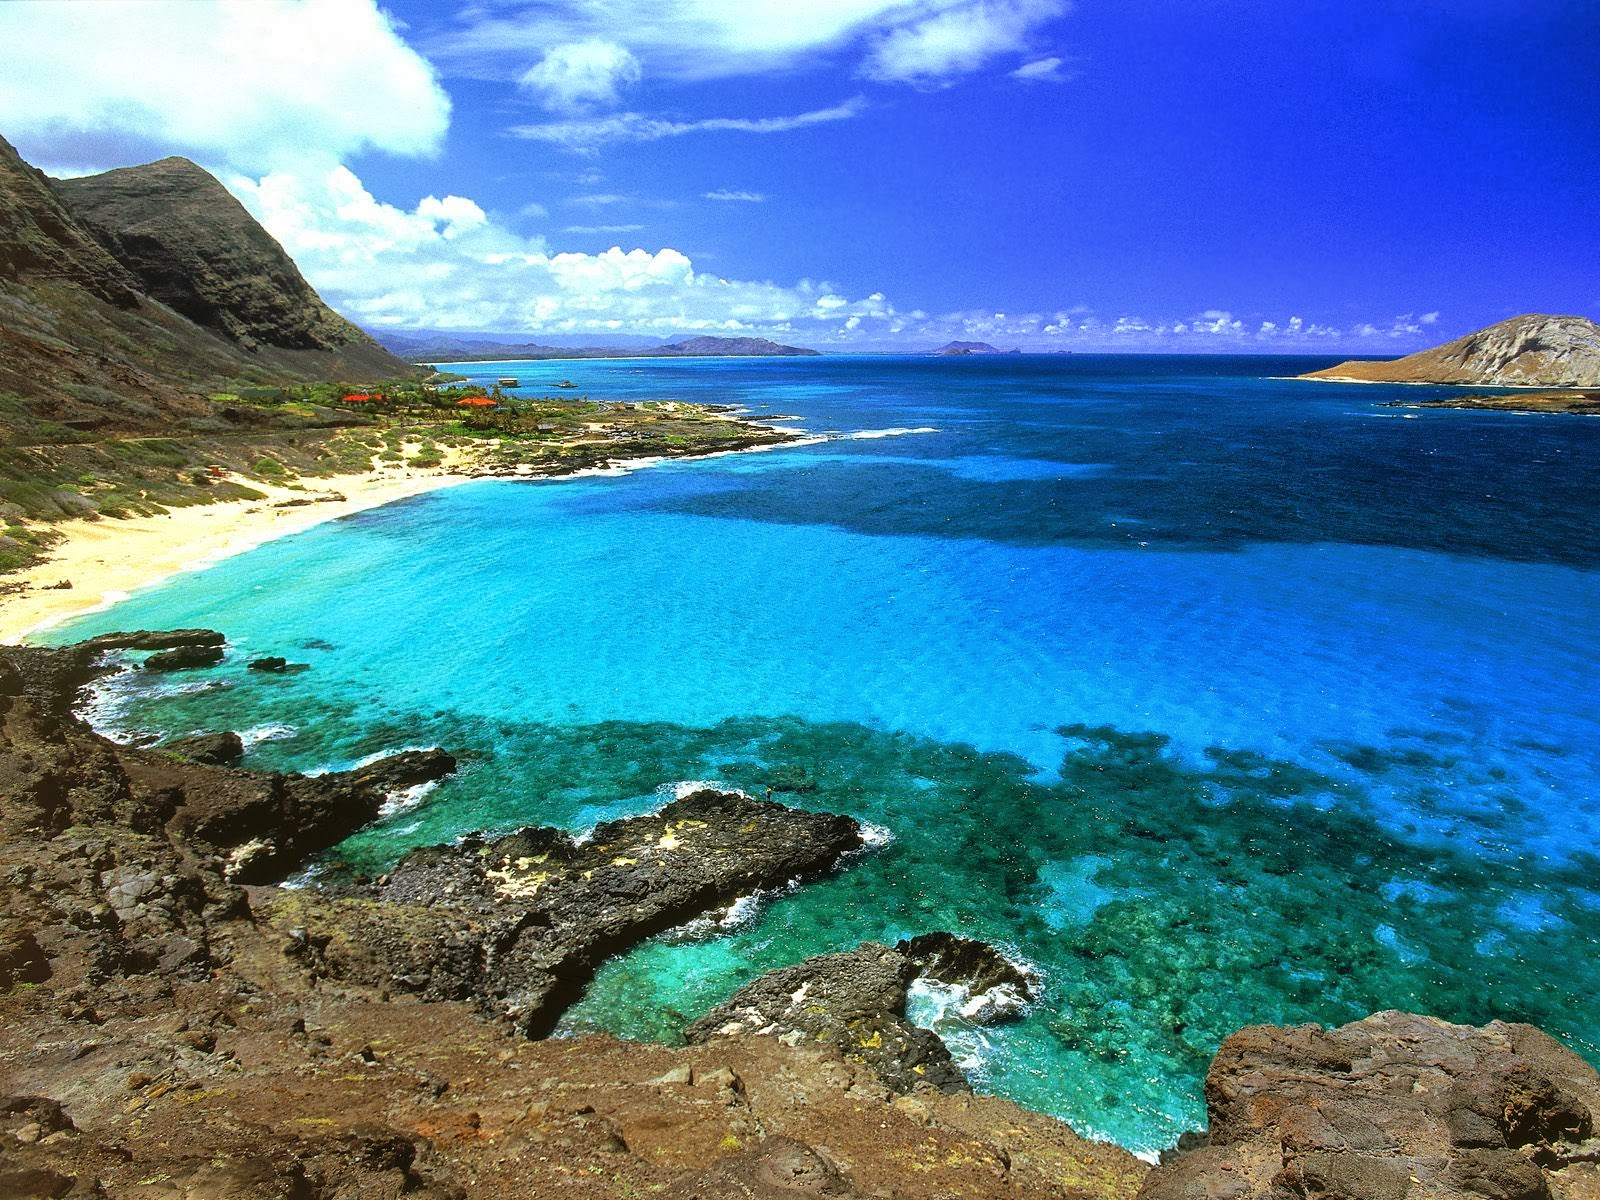 makapu-oahu-hawaii-temperature.jpg